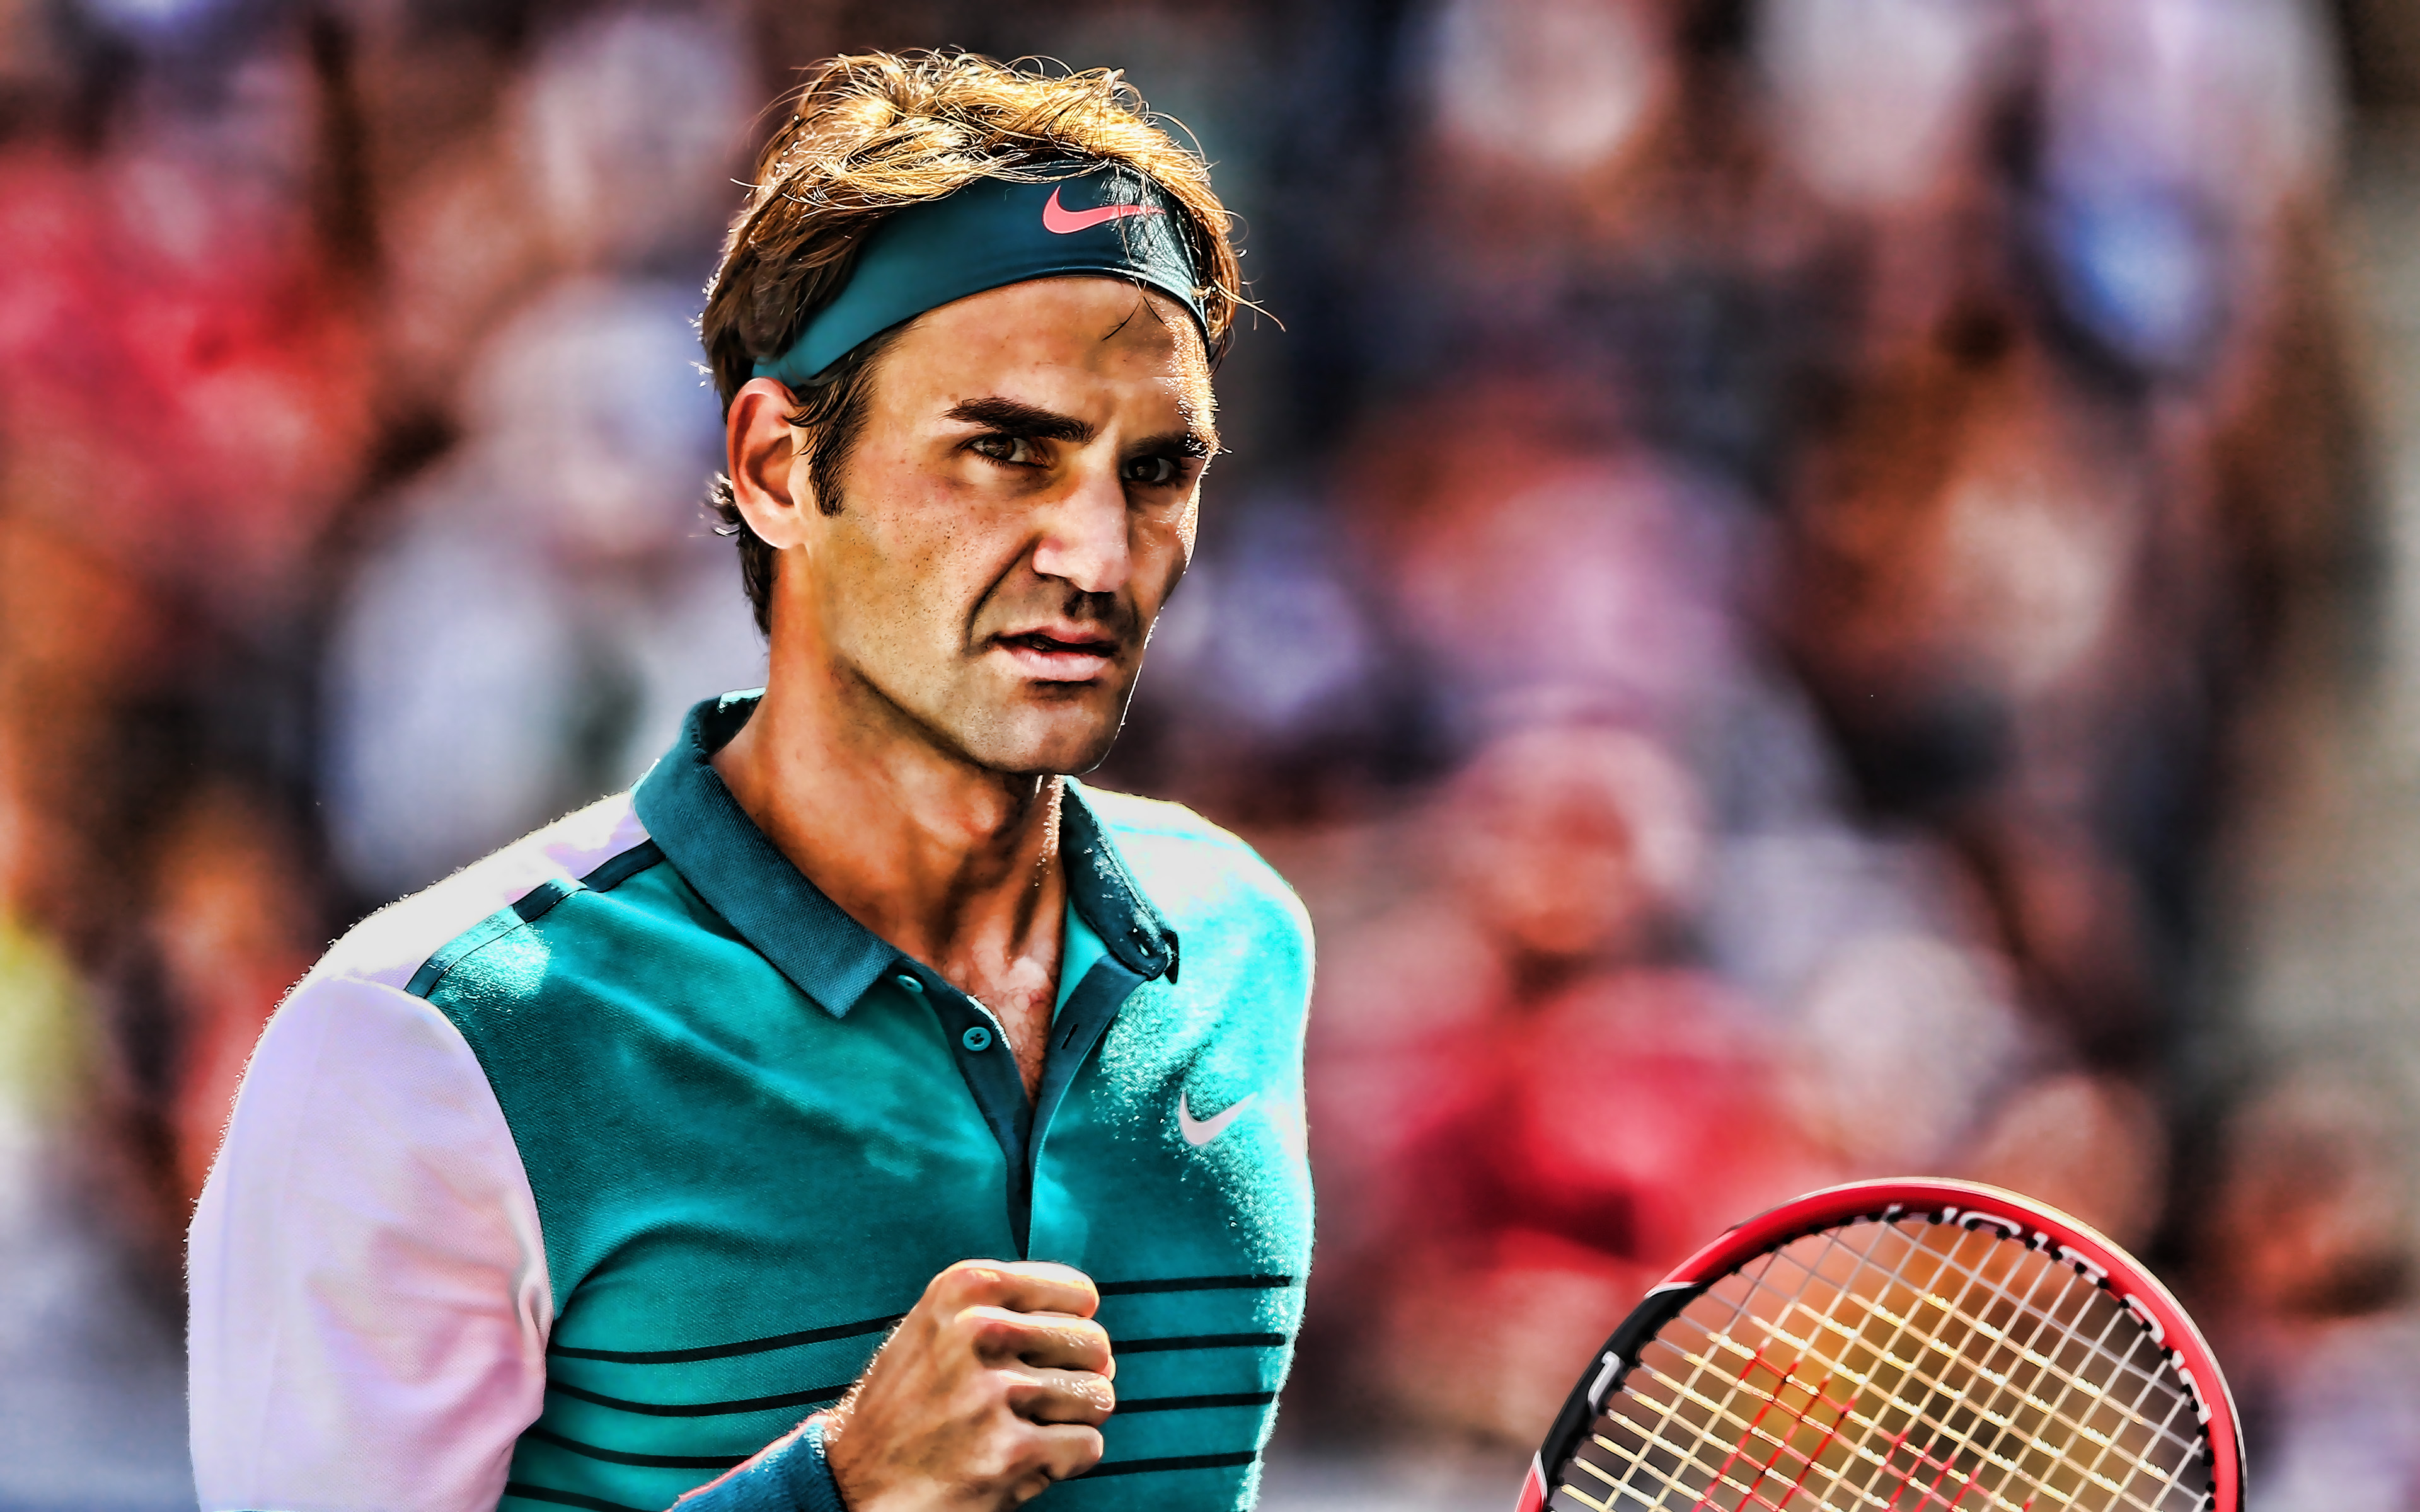 Roger Federer Wallpapers X 24 Picture 310470 Ceelebs Messageboard Theplace2